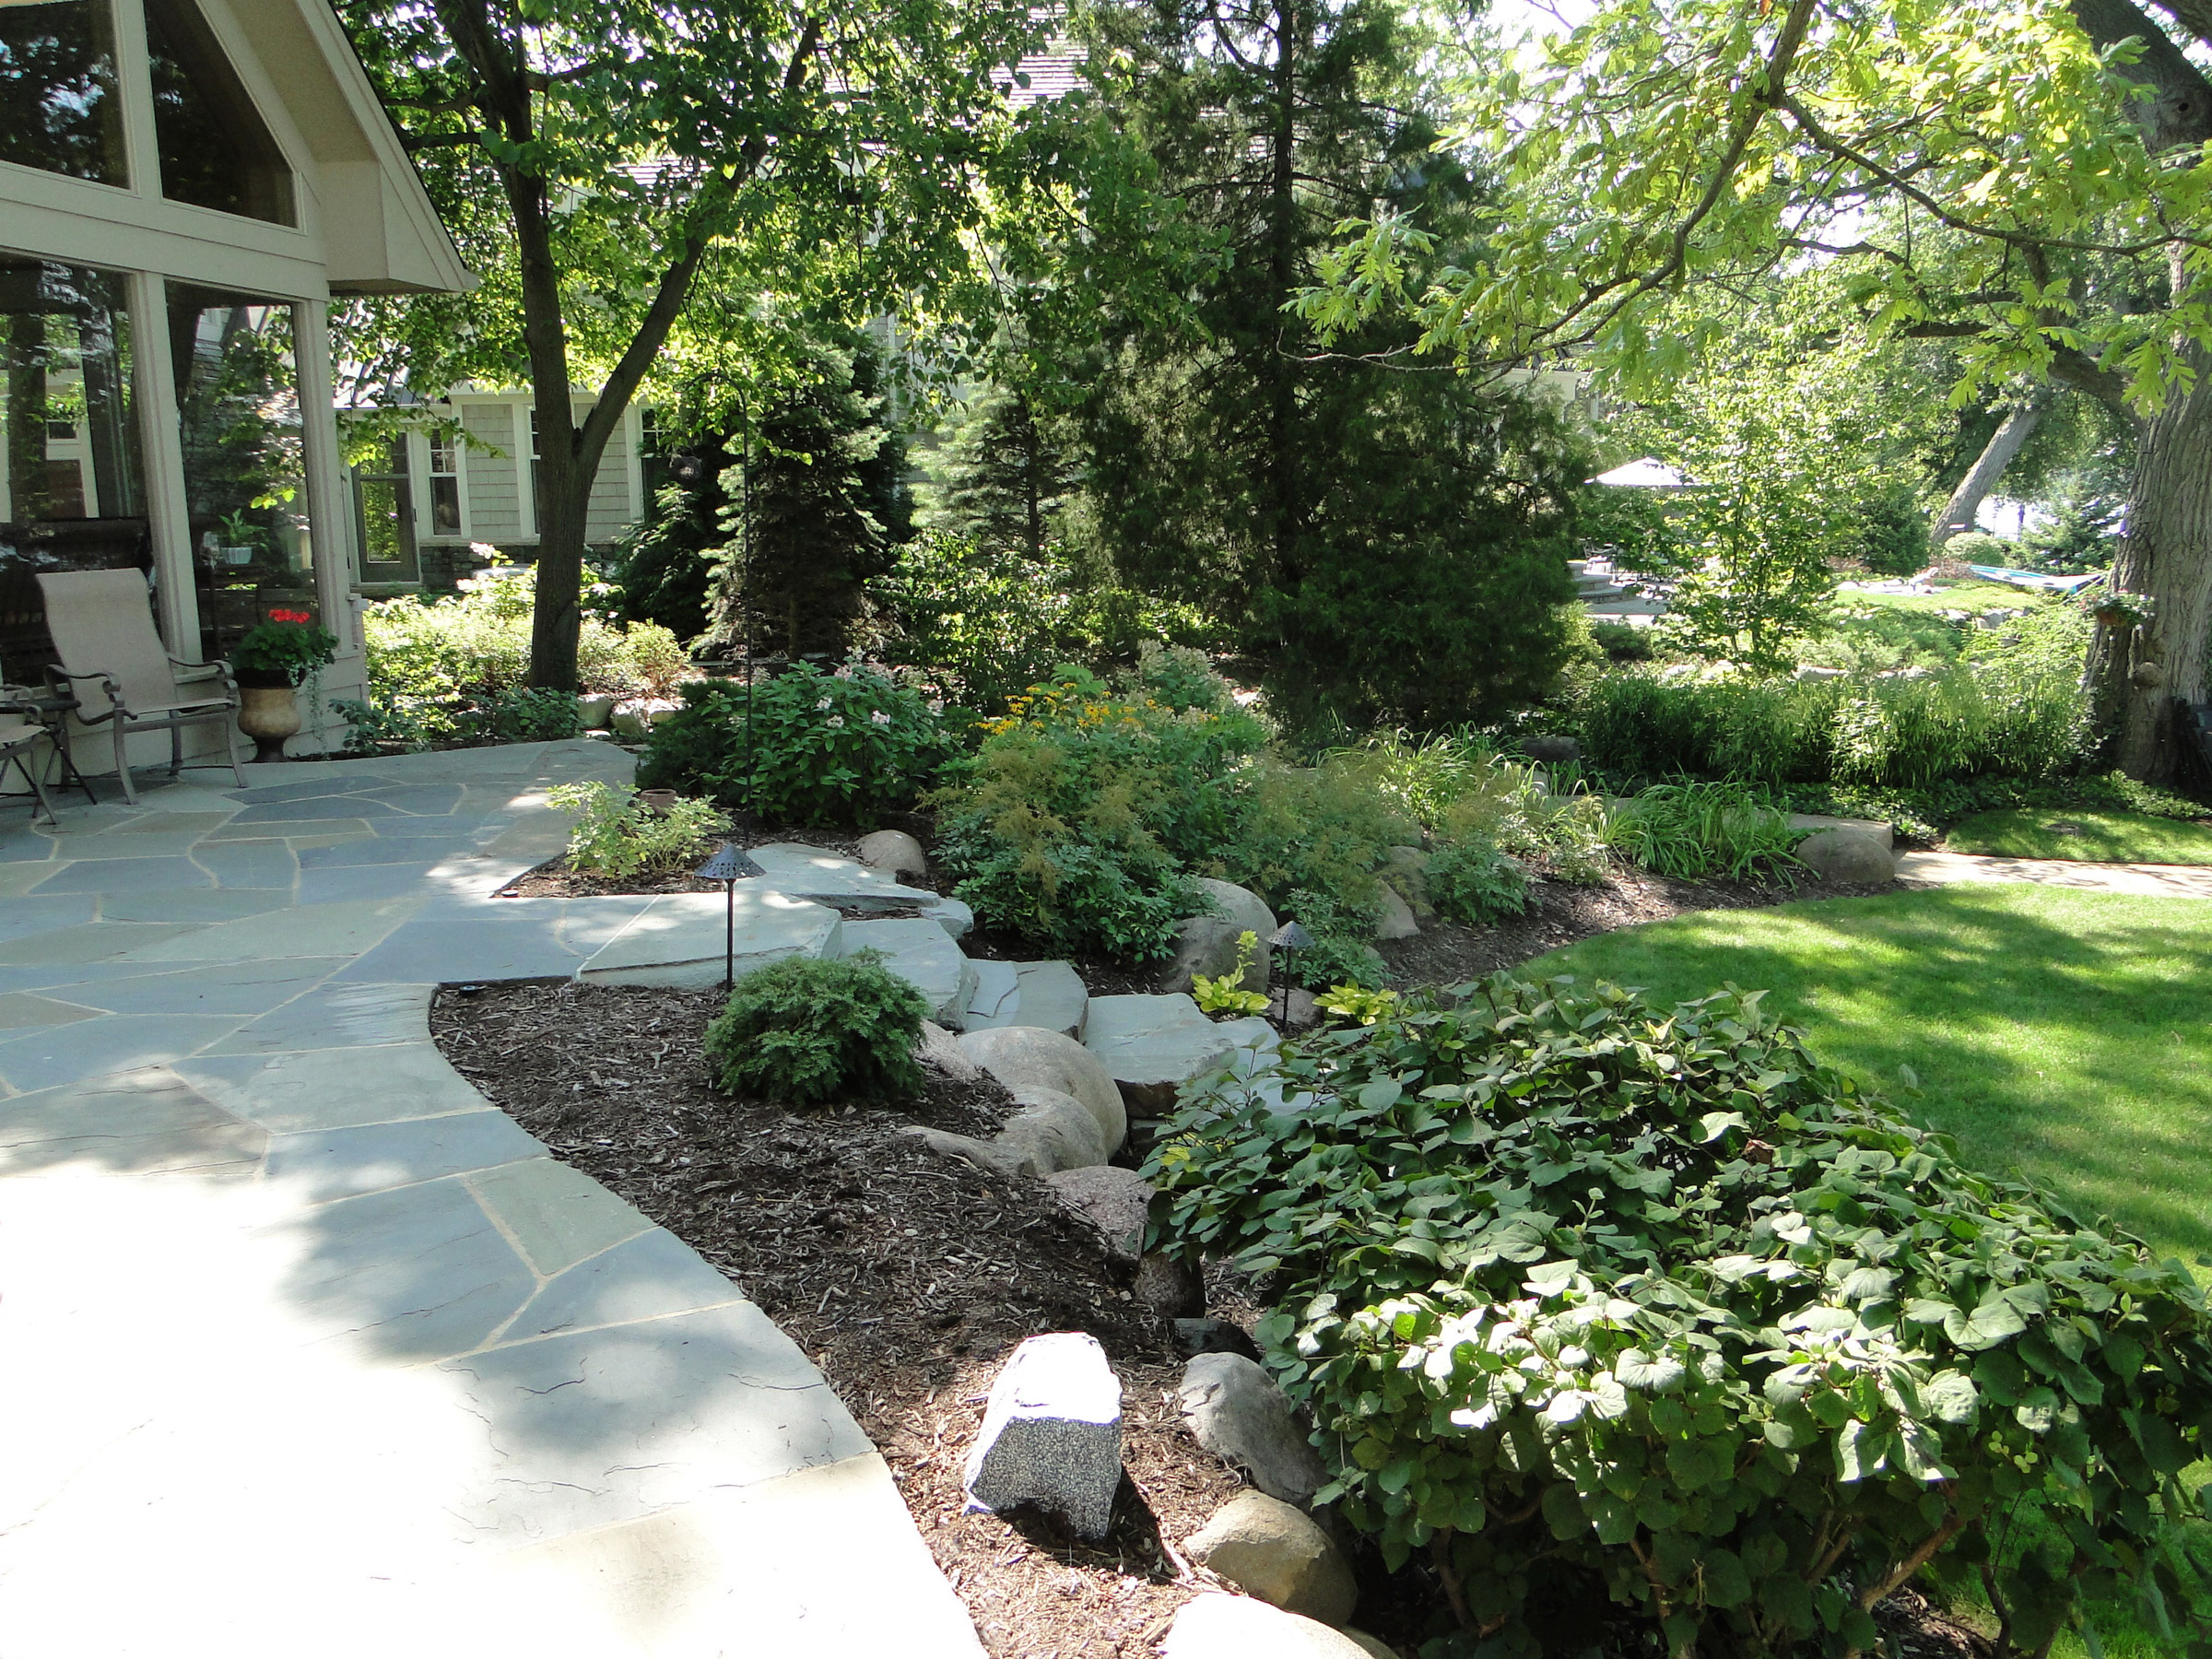 Garden landscaping and hardscaping project complete